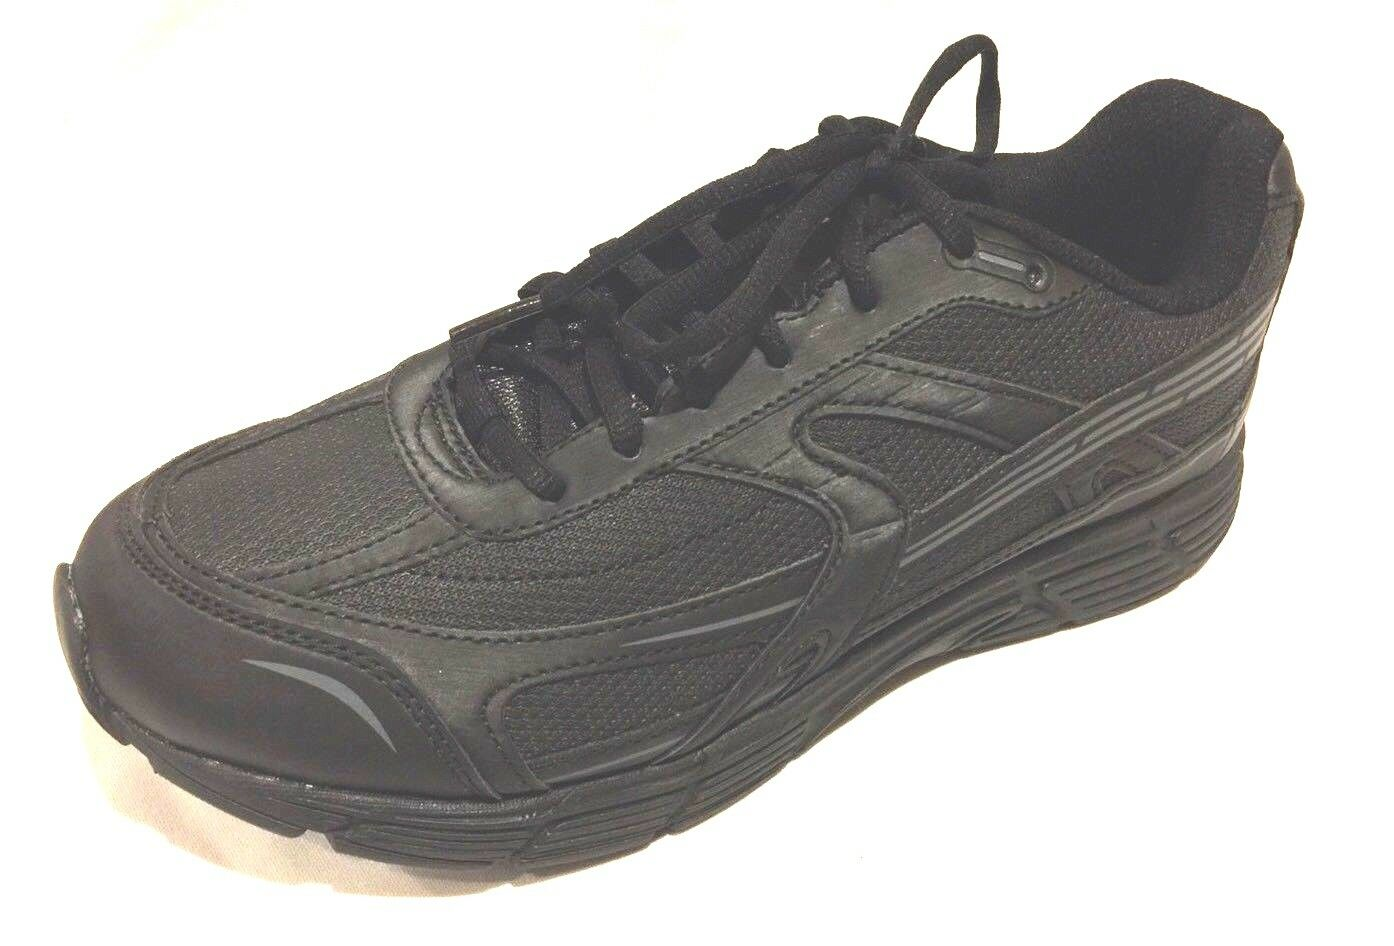 newest 444cf 0a9a2 Mens Walmart Sz 8 1 2 Wide Athletic Shoes Shoes Shoes Black Light Weight NWT